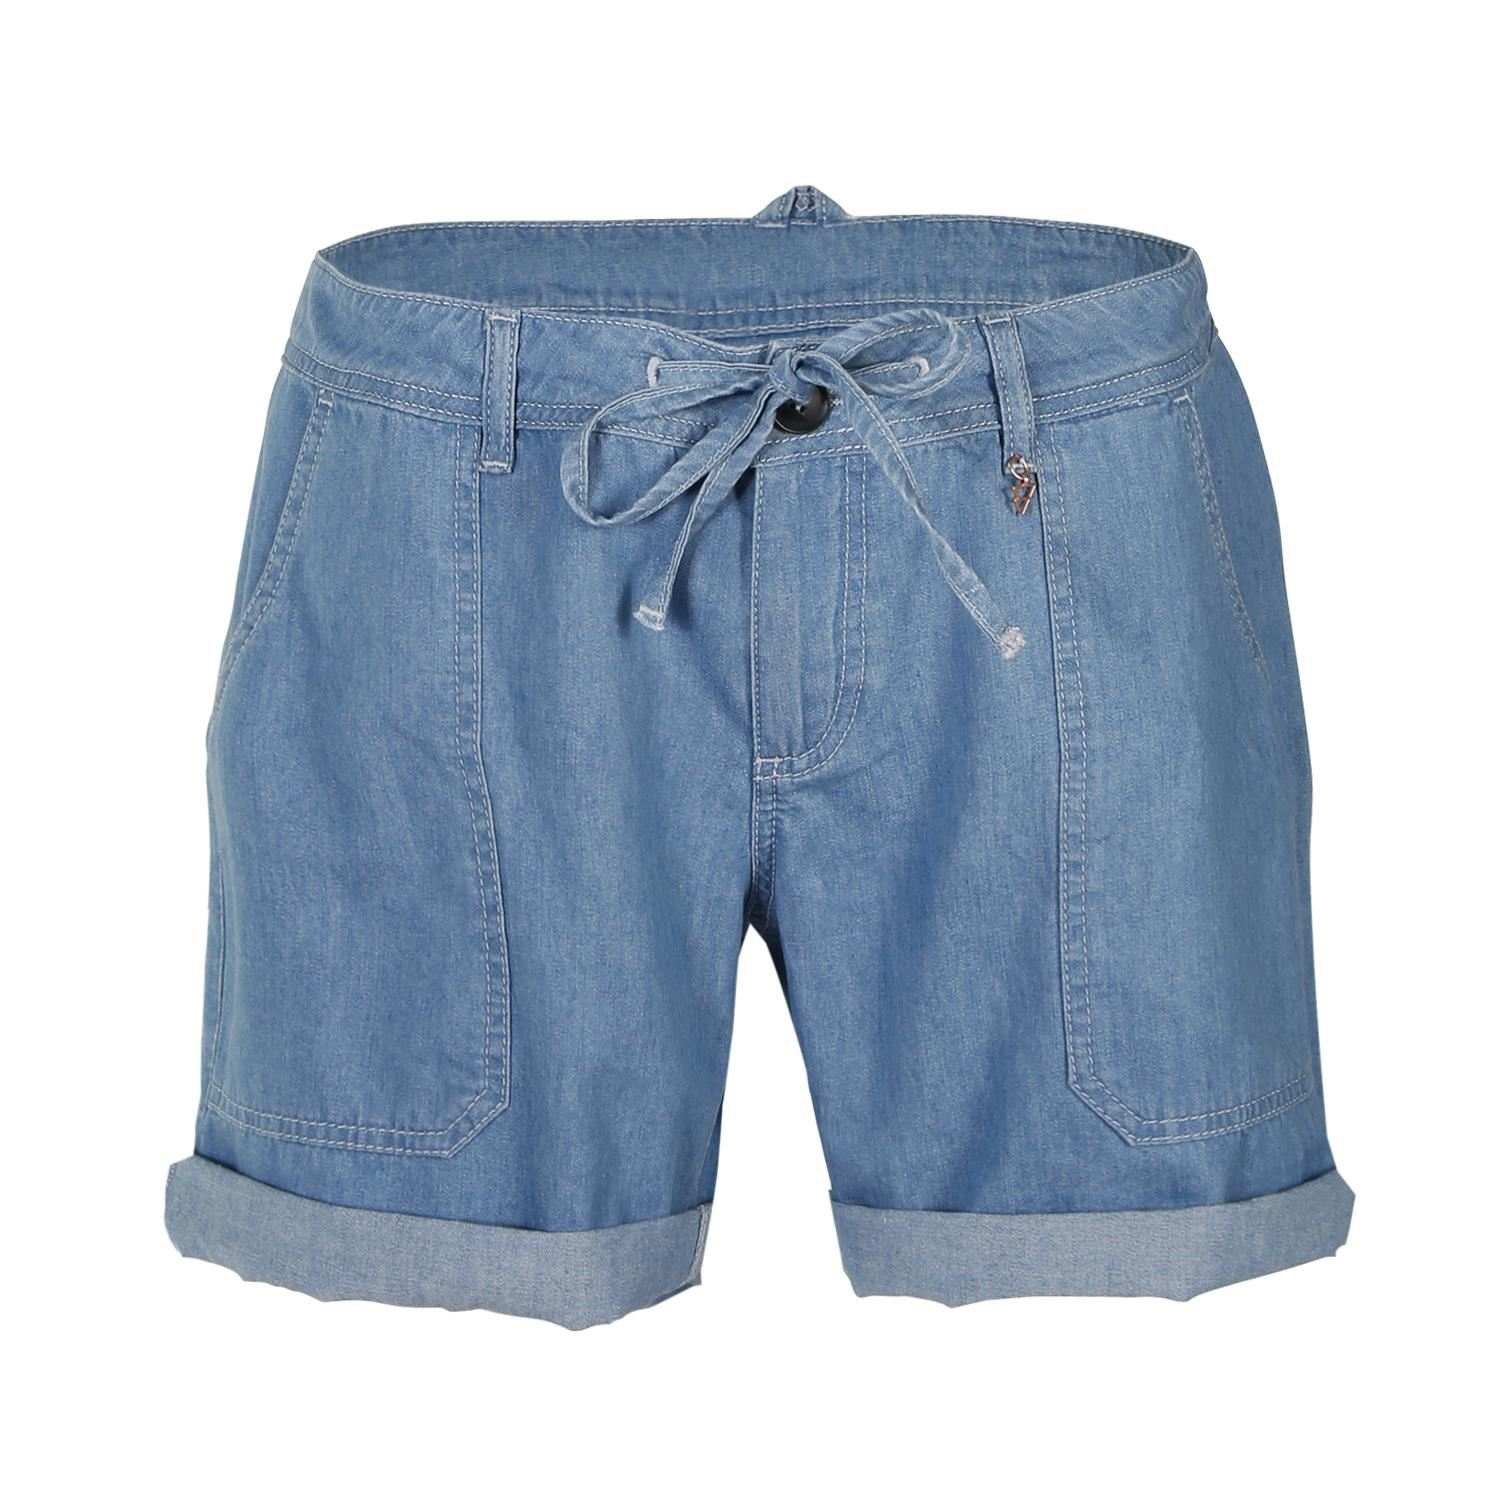 Brunotti Kaleah  (blauw) - dames casual shorts - Brunotti online shop